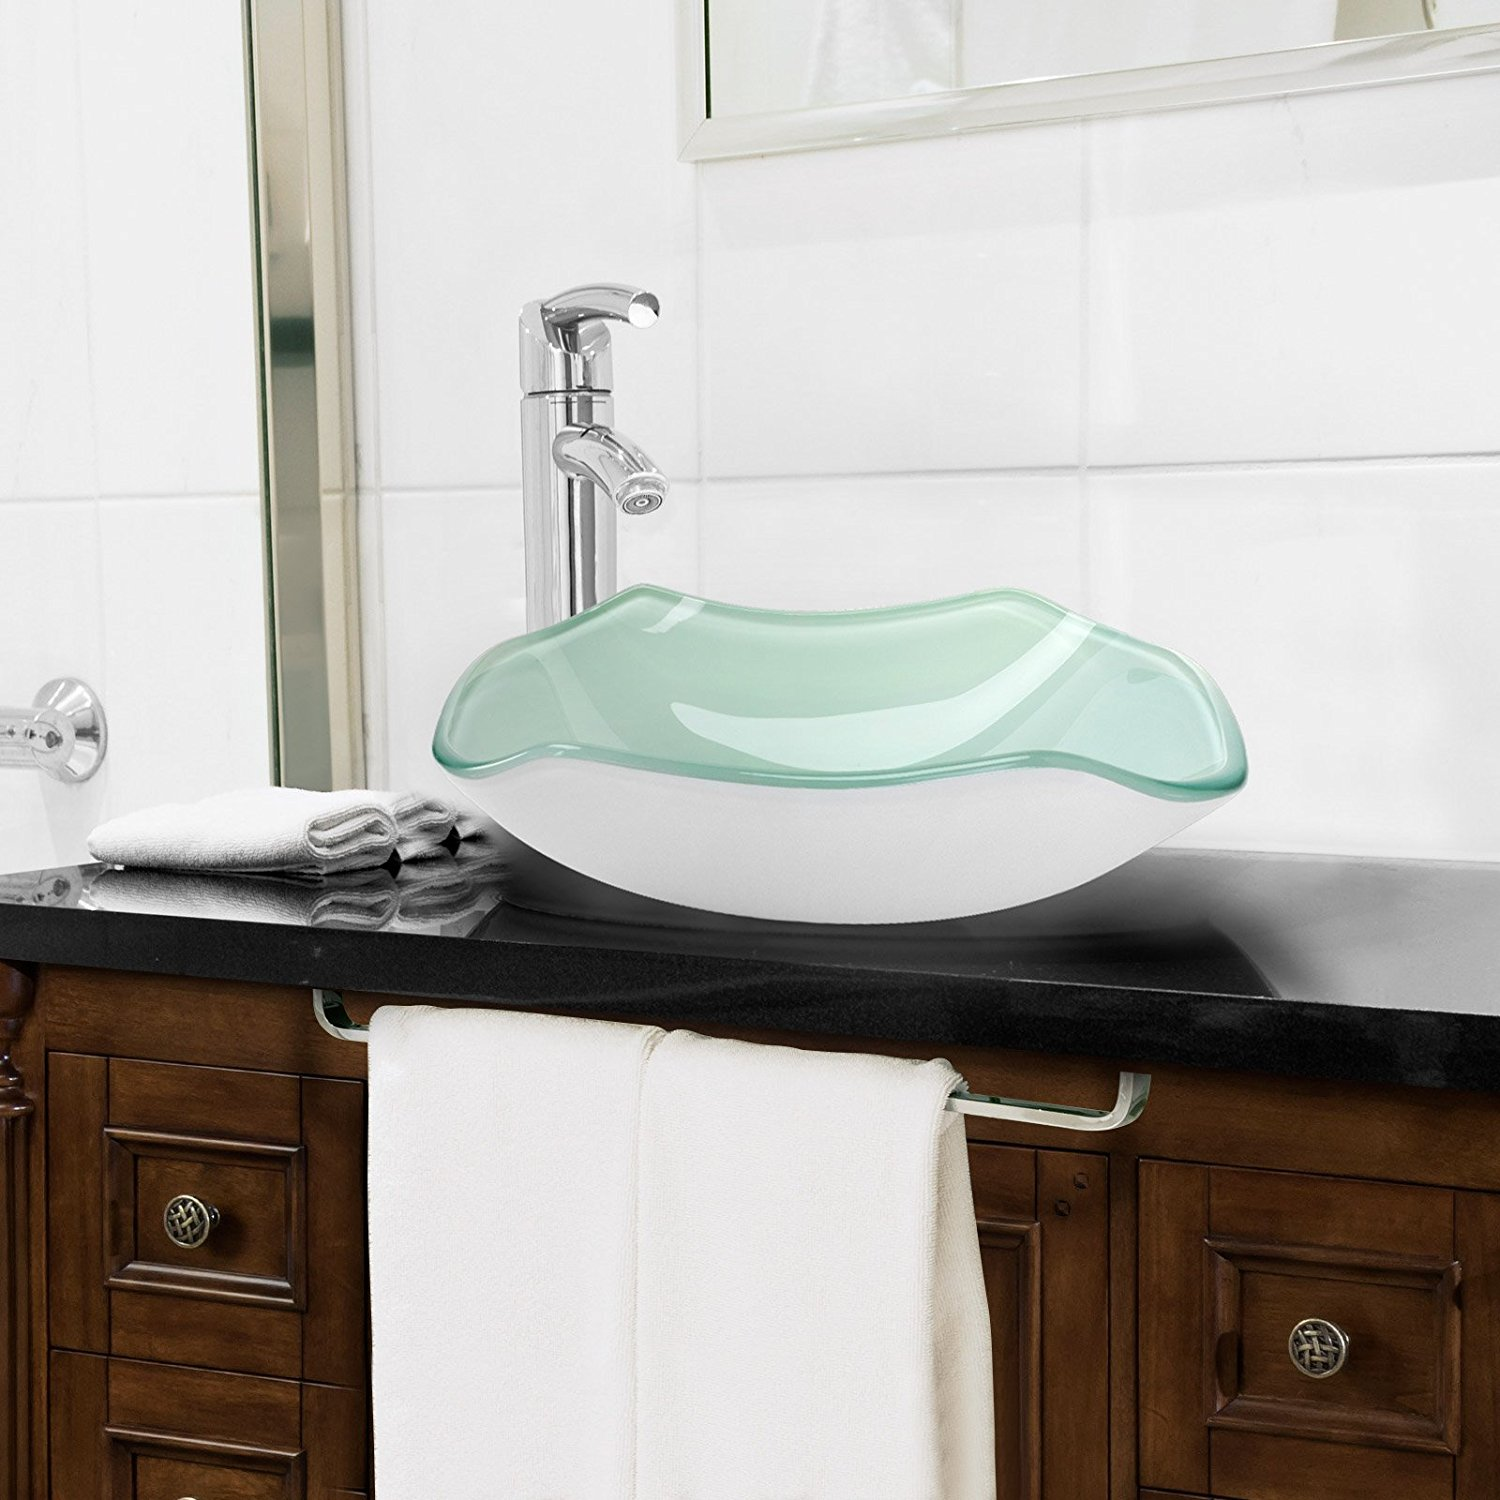 black countertops your placed faucet by tempered glass and in of bathroom furniture stainless connected dream wonderful steel washbowl look round